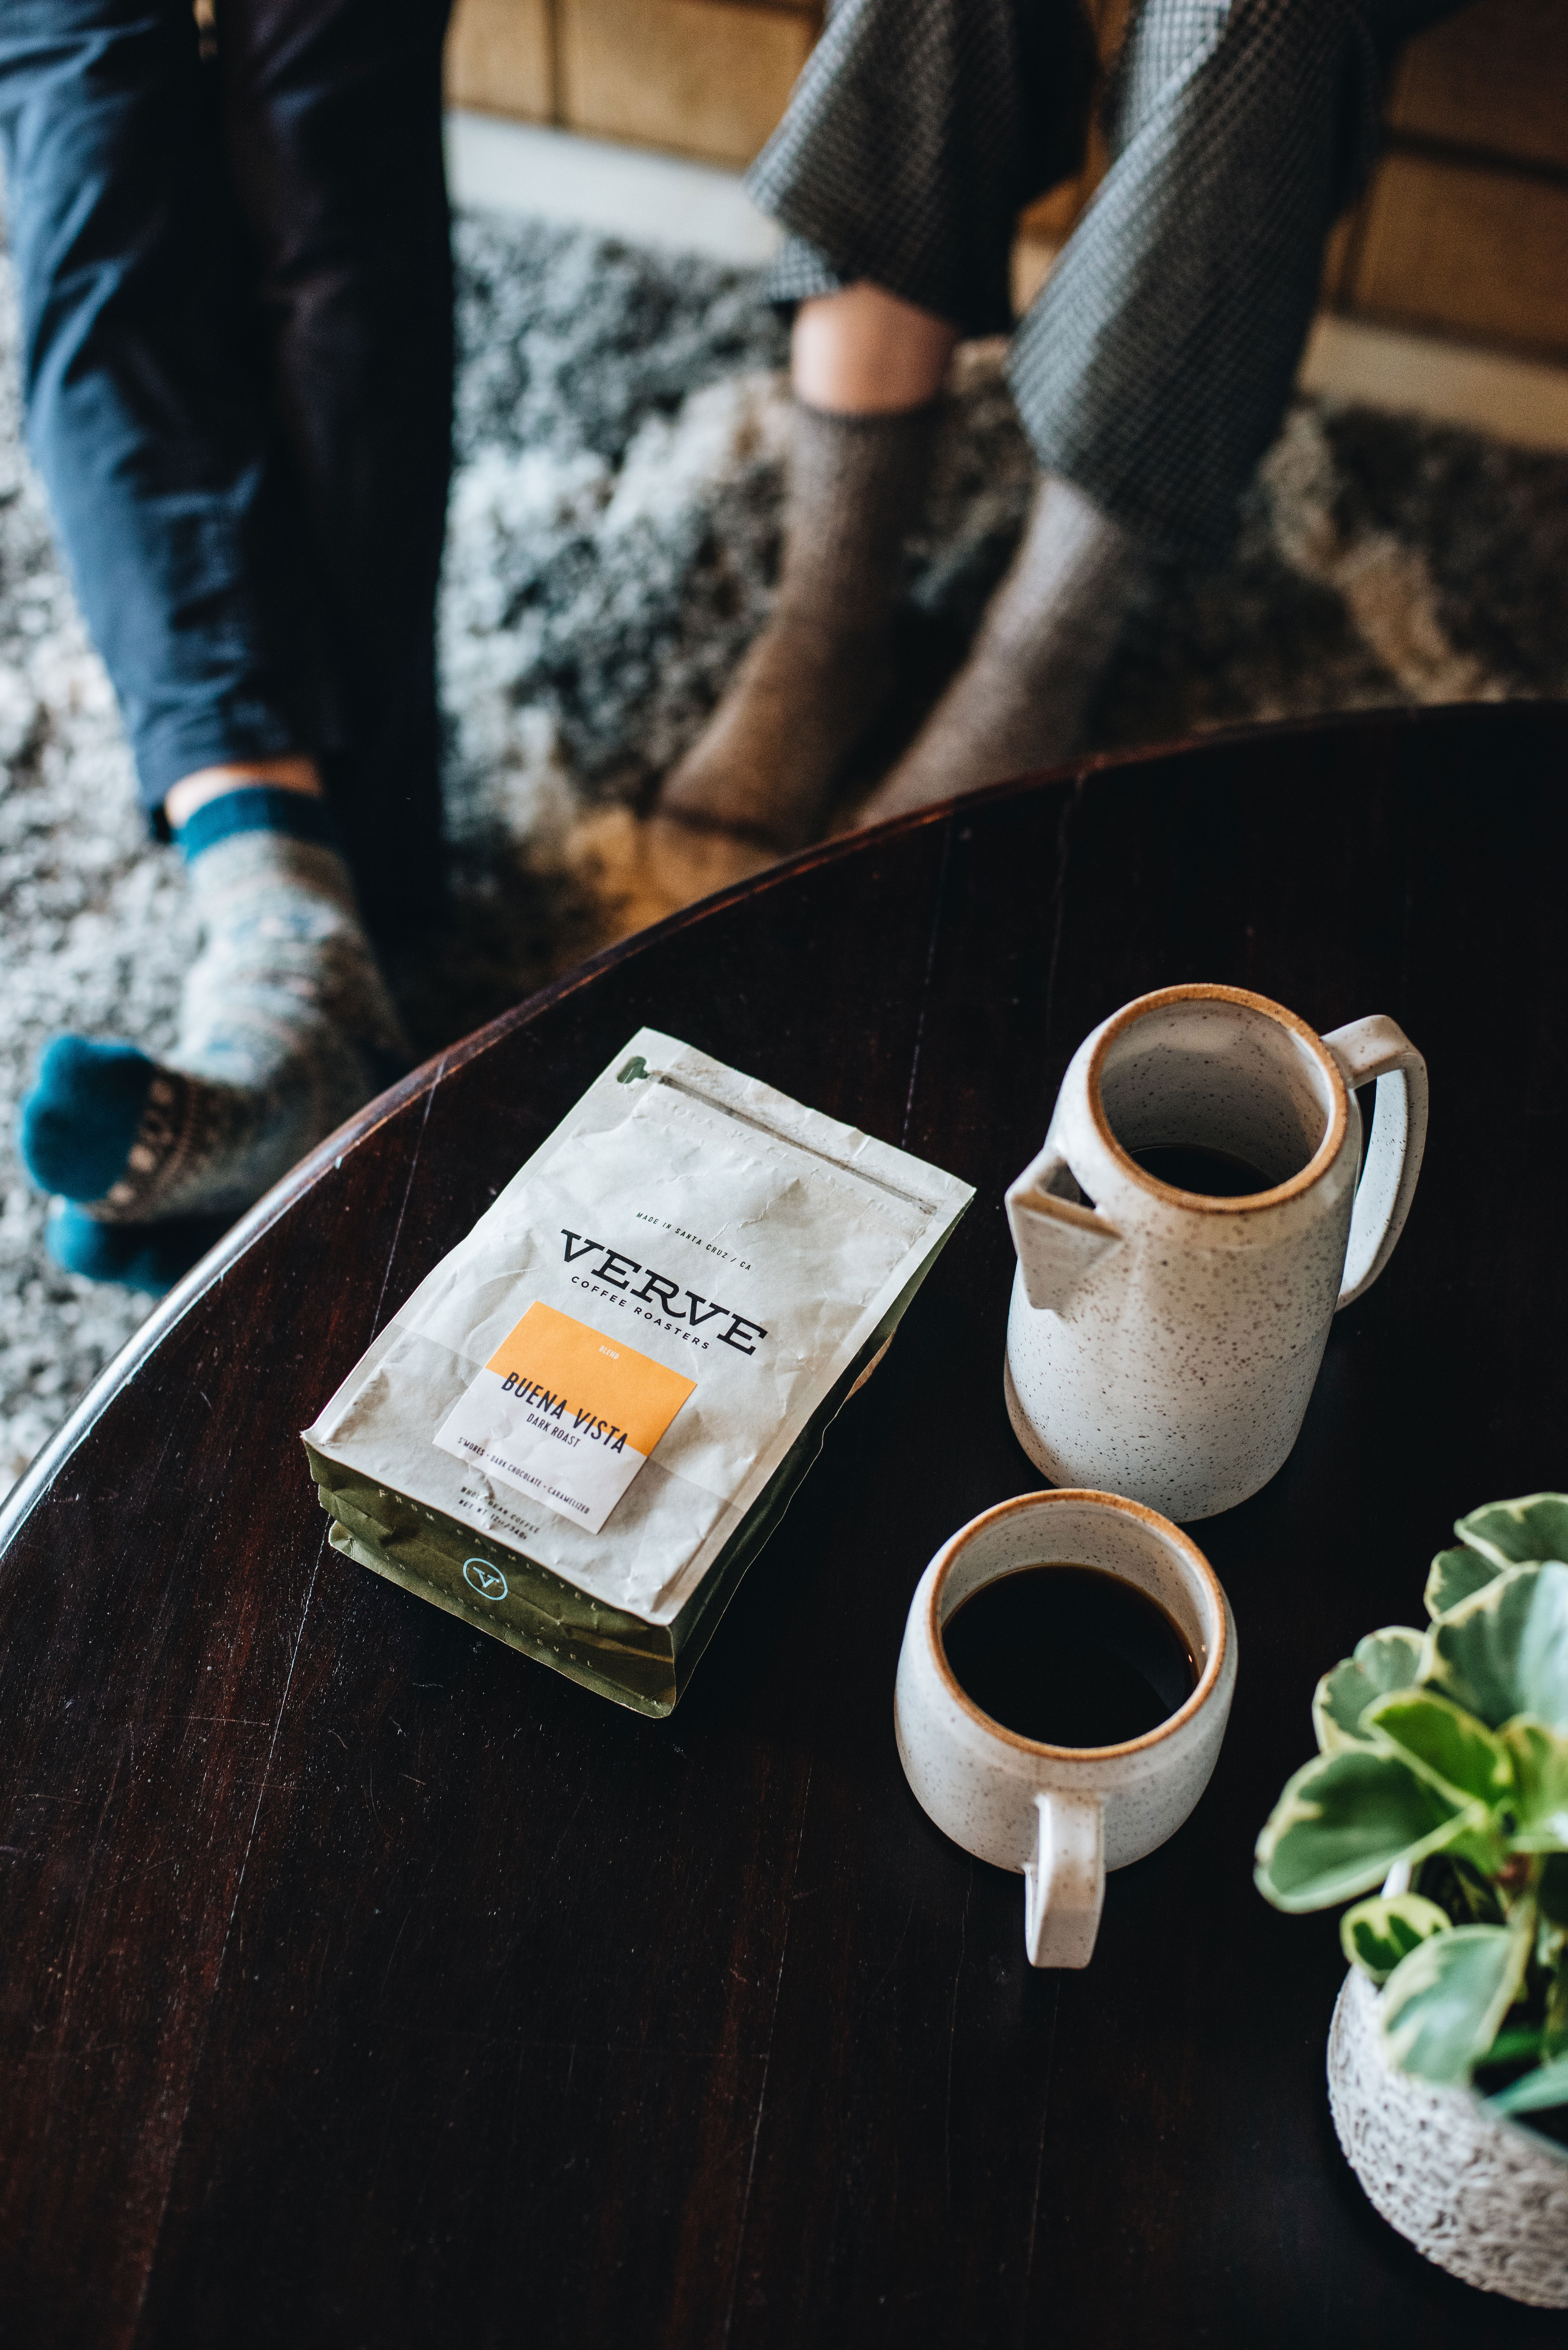 Coffee Subscription Box Mother's Day Gifts for the Foodie in Your Life - A coffee subscription box from Verve is a gift mom is bound to use and love. The company lets consumers completely personalize their orders, meaning you can select from single origin to blended roasts, the preferred grind – whole bean up to fine espresso – the quantity and frequency in which it's delivered.